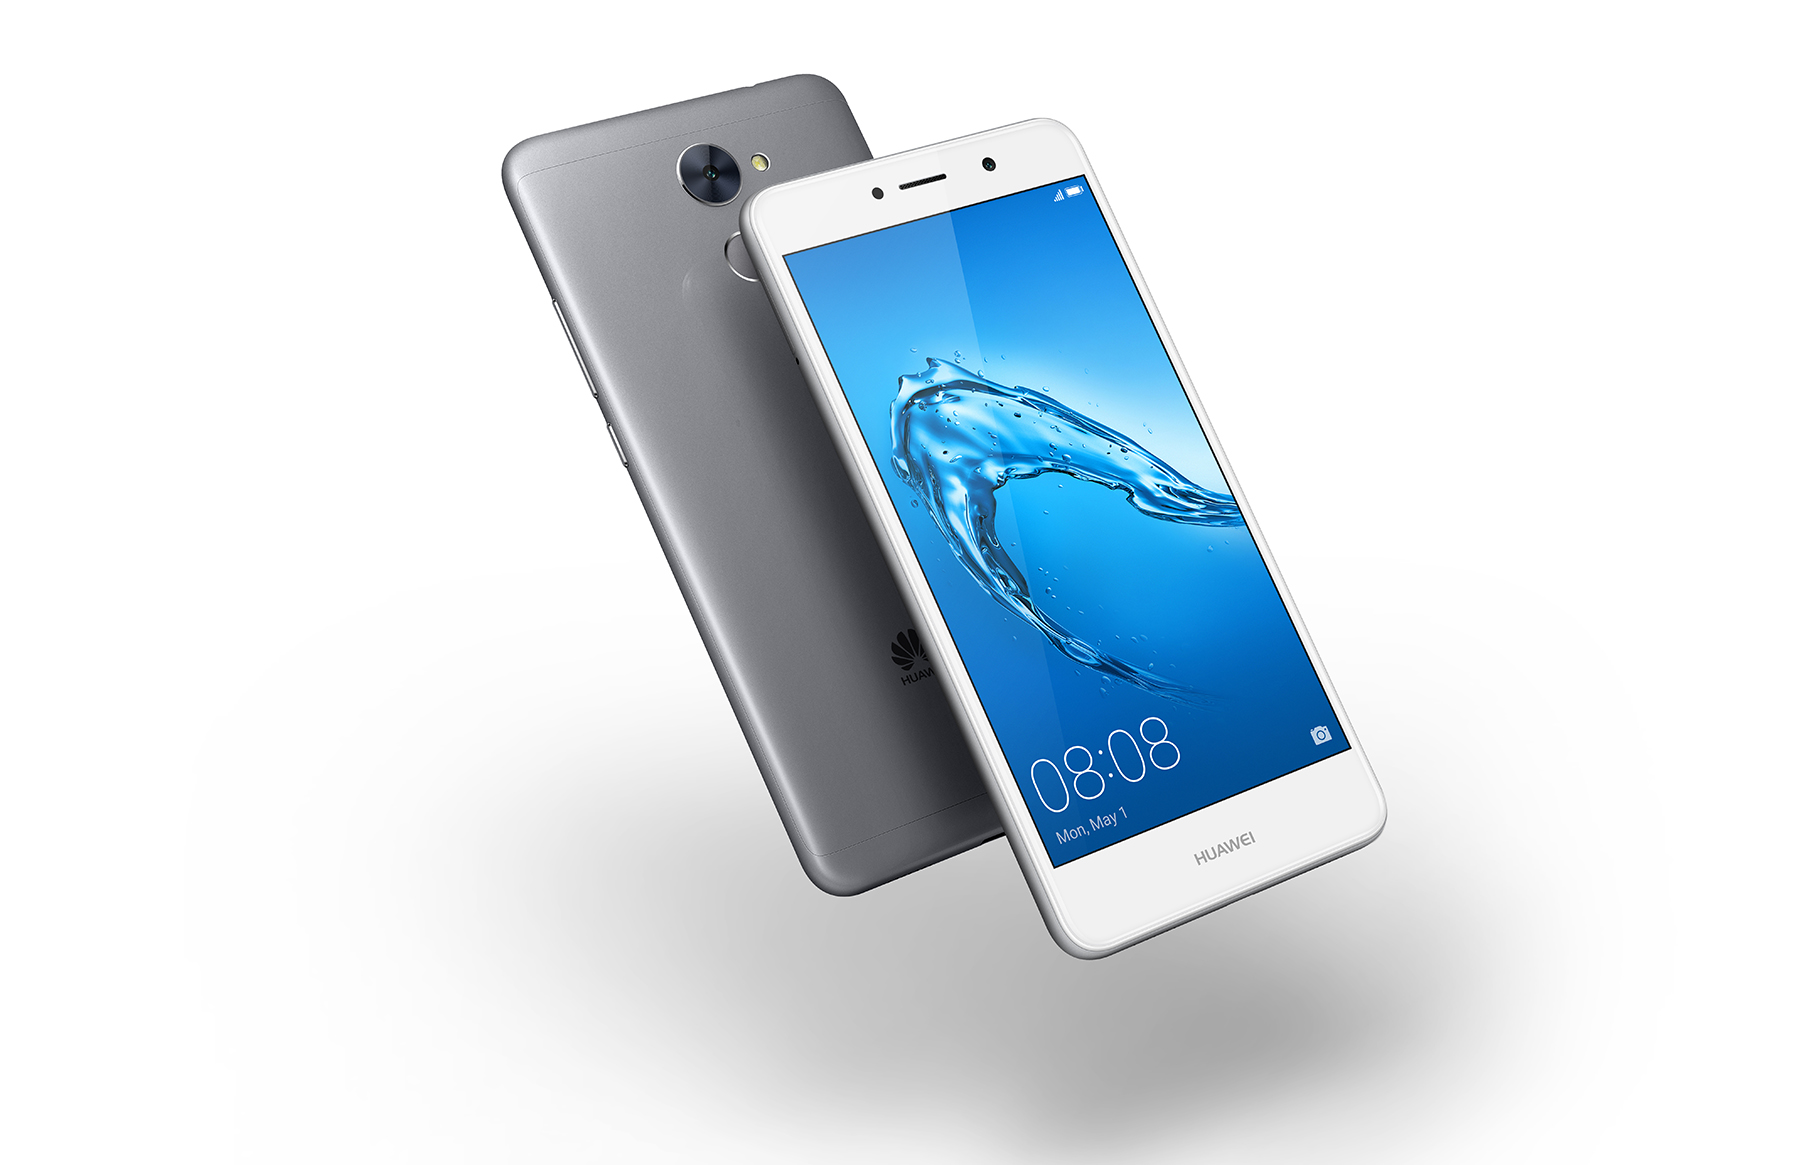 The Huawei Y7 Prime: A Non-Stop Smartphone is Now Available in Pakistan